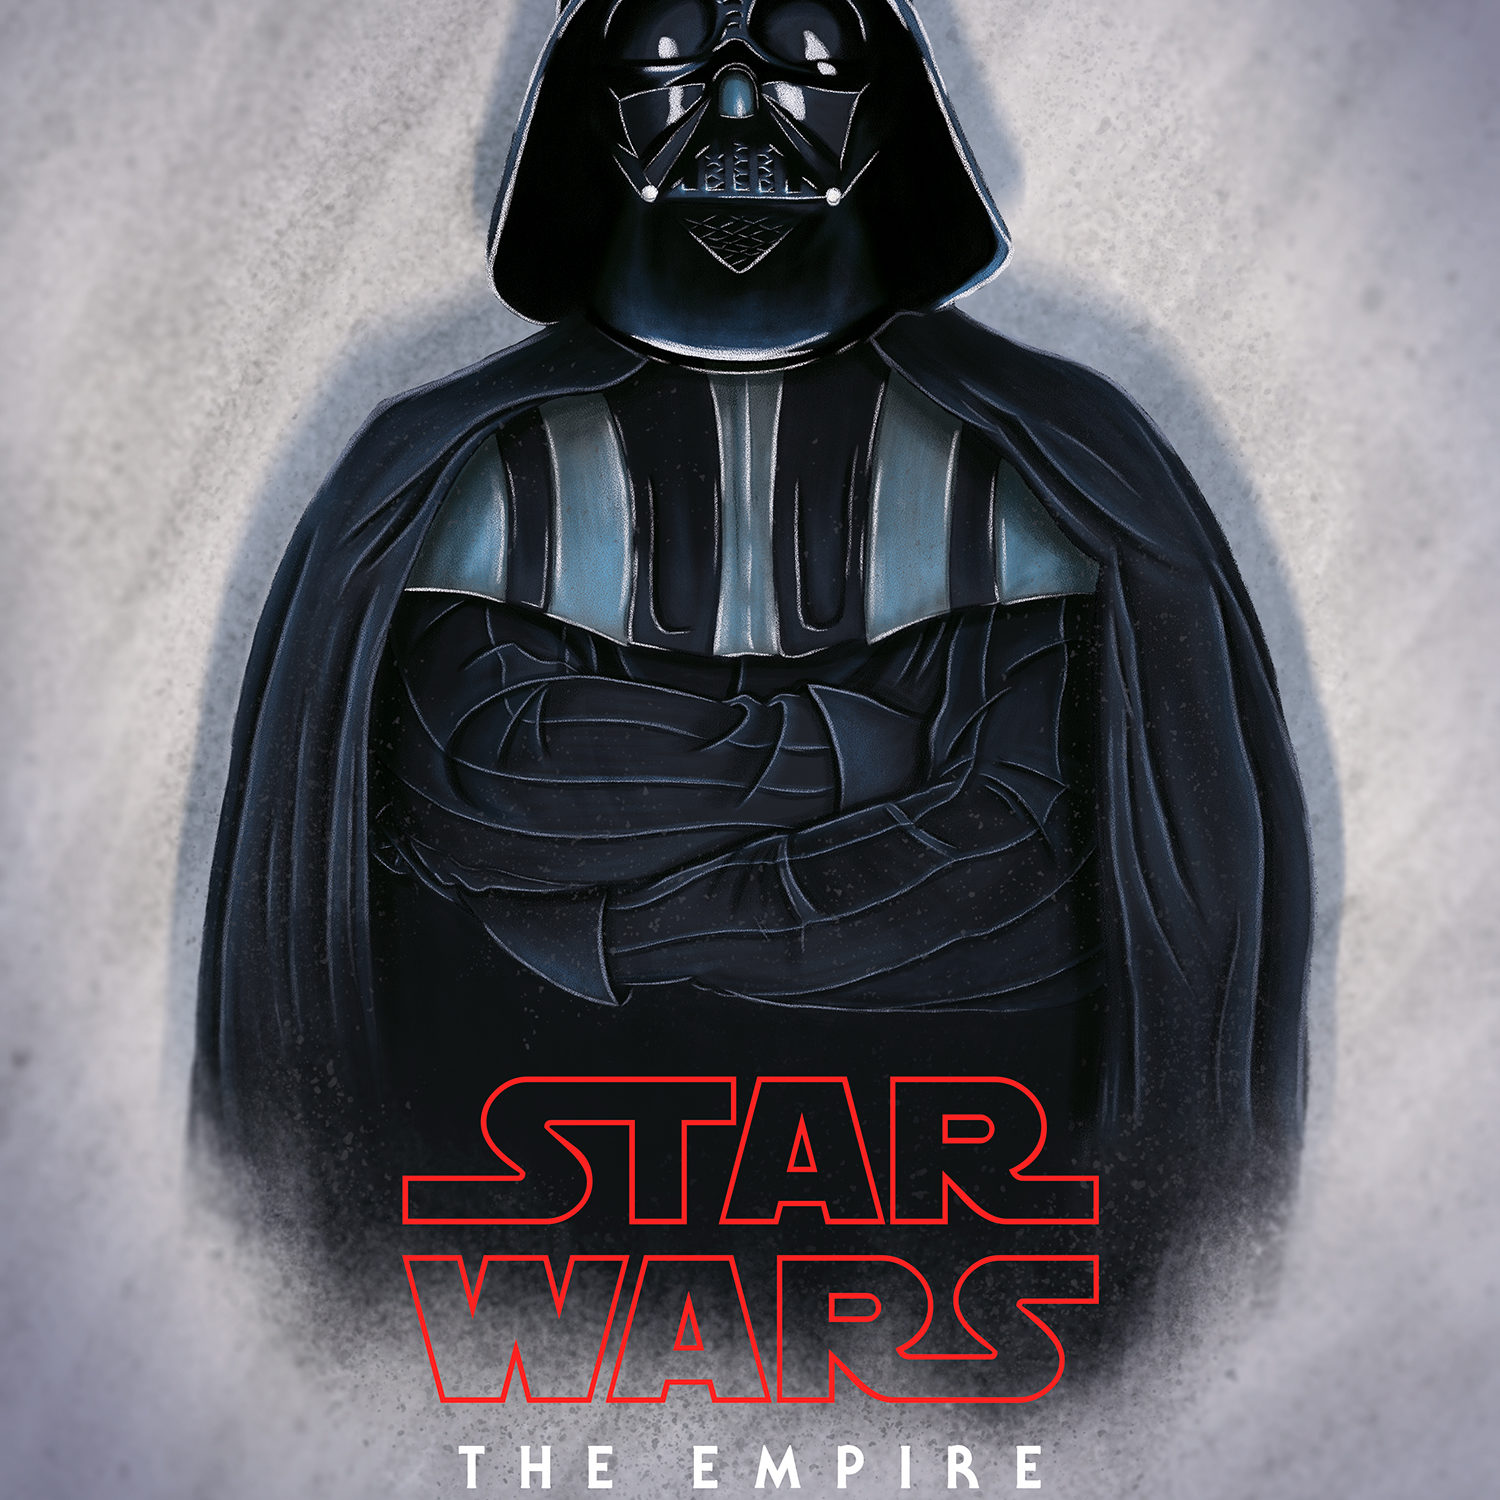 An alternate movie poster of Star Wars: The Empire Strikes Back.